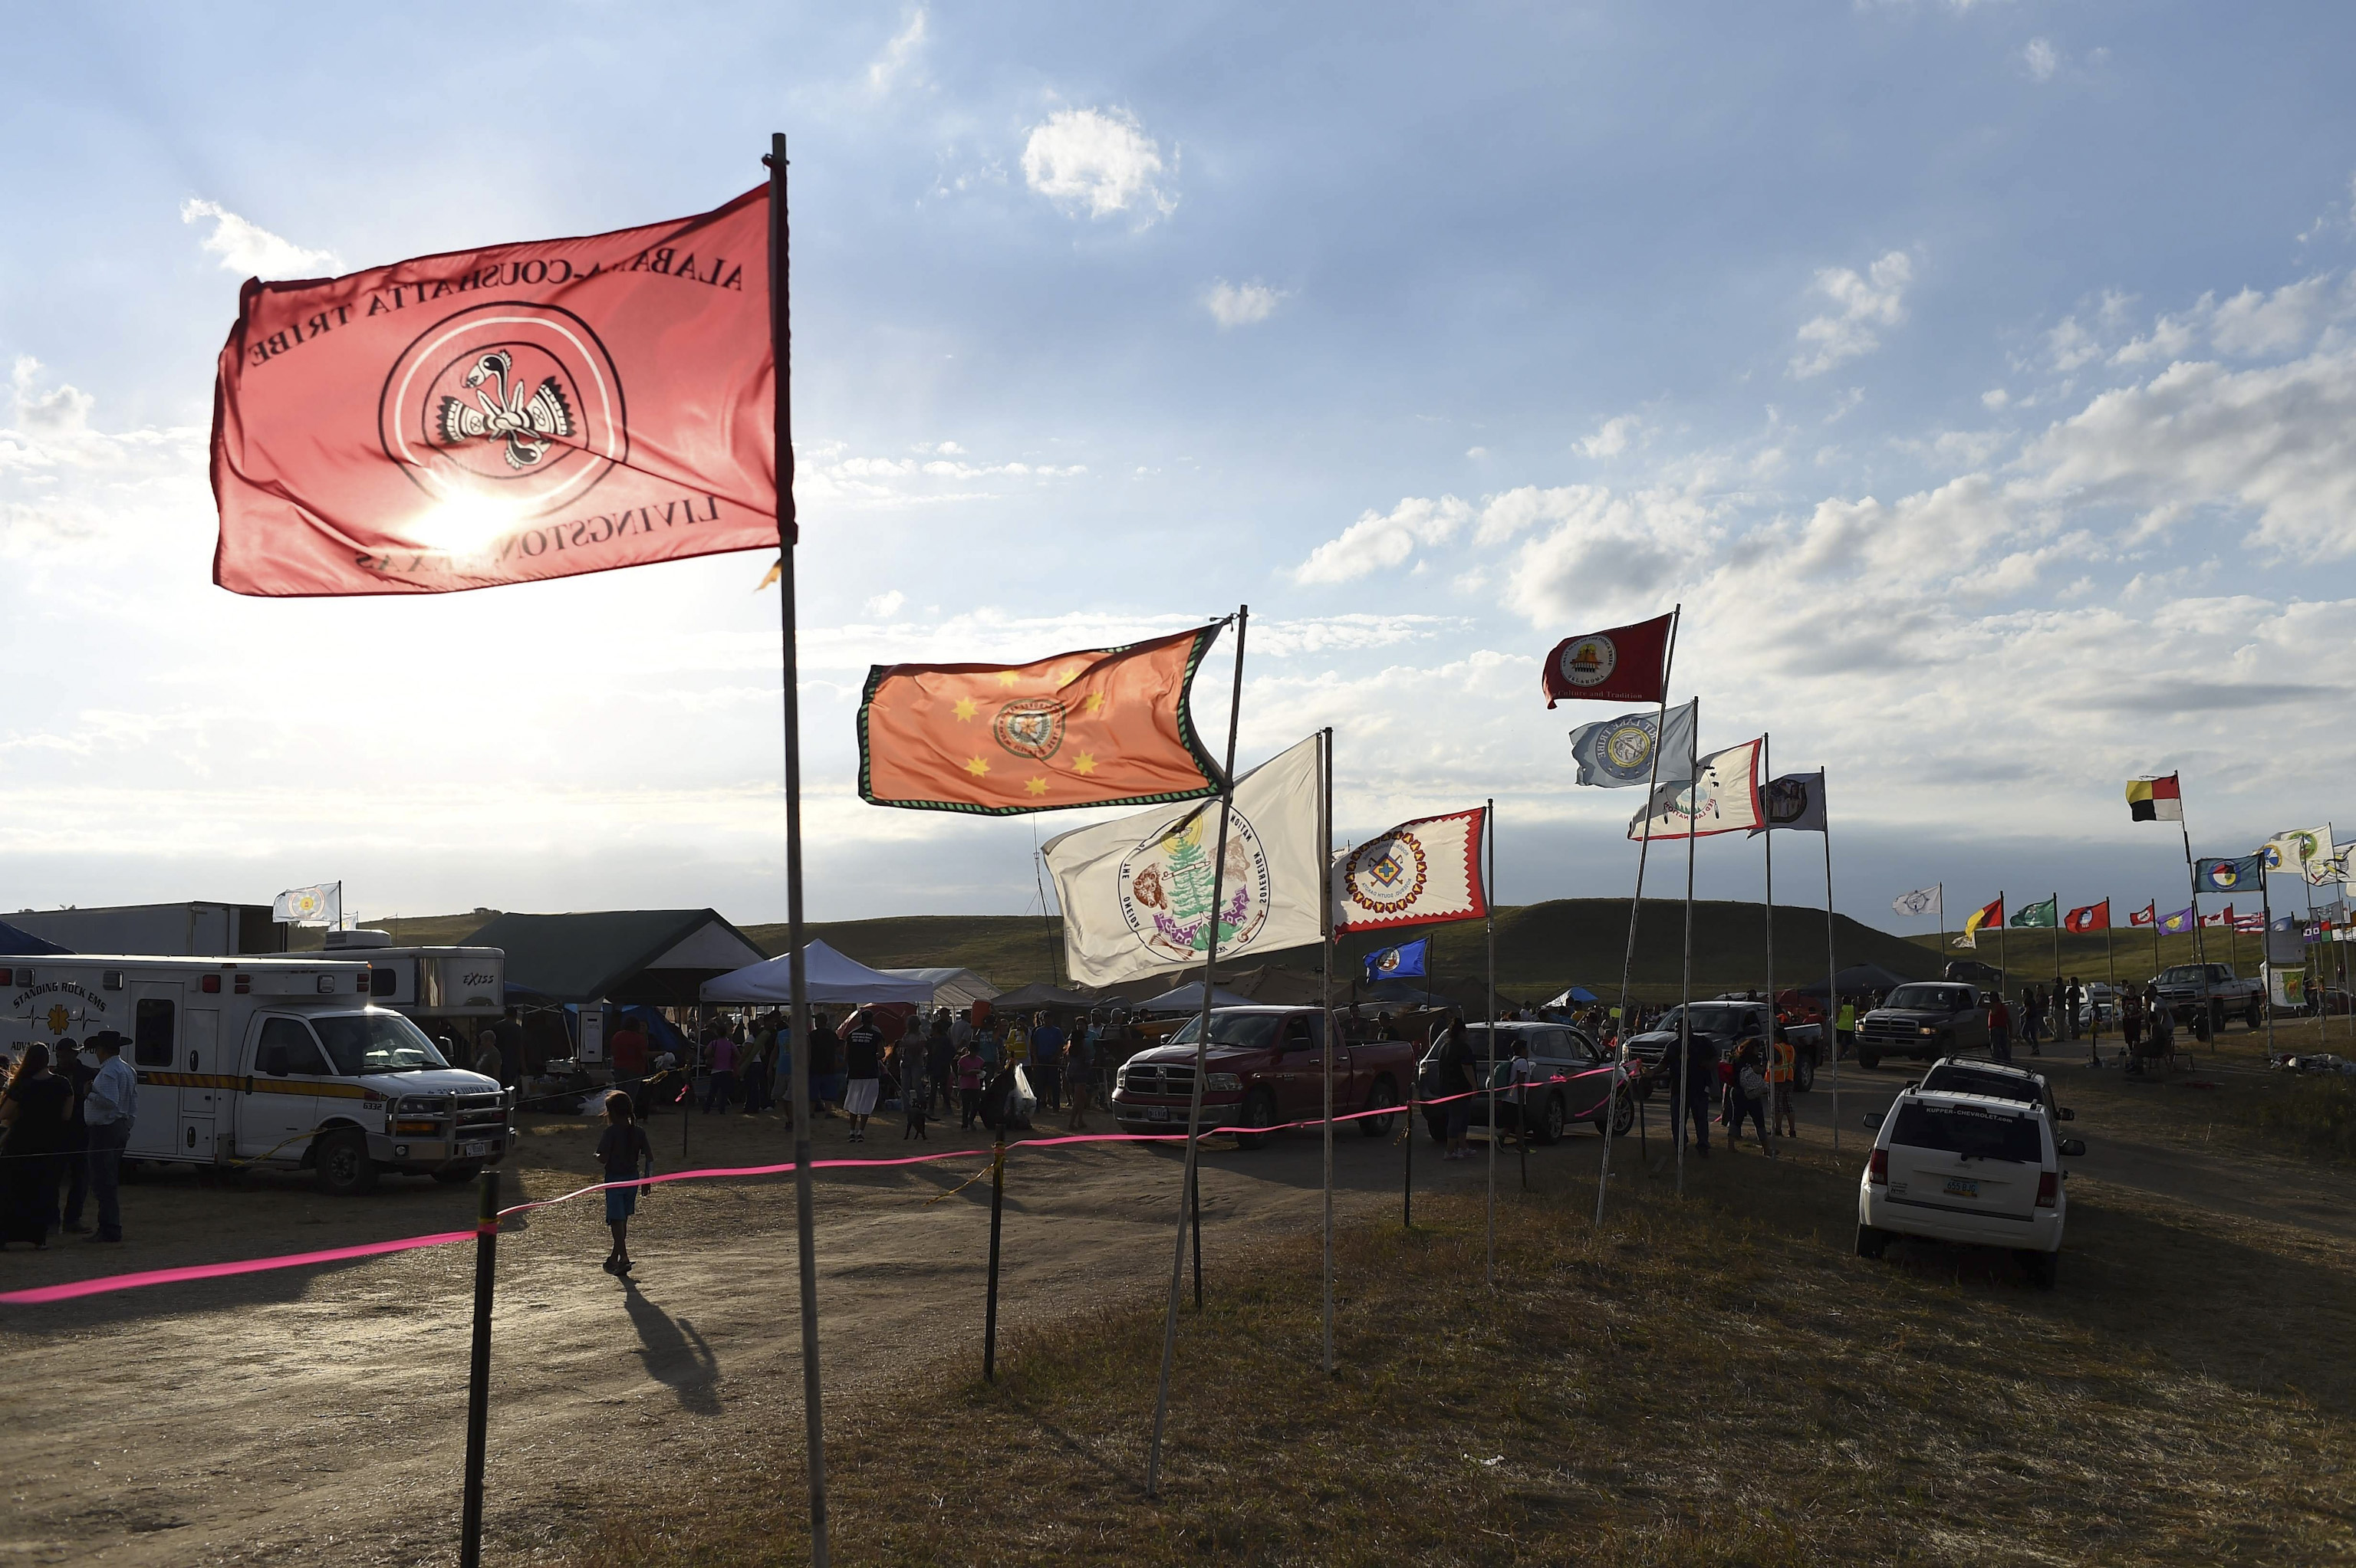 Flags of Native American tribes from across the U.S. and Canada line the entrance to a protest encampment near Cannon Ball, North Dakota, on Sept. 3, 2016.